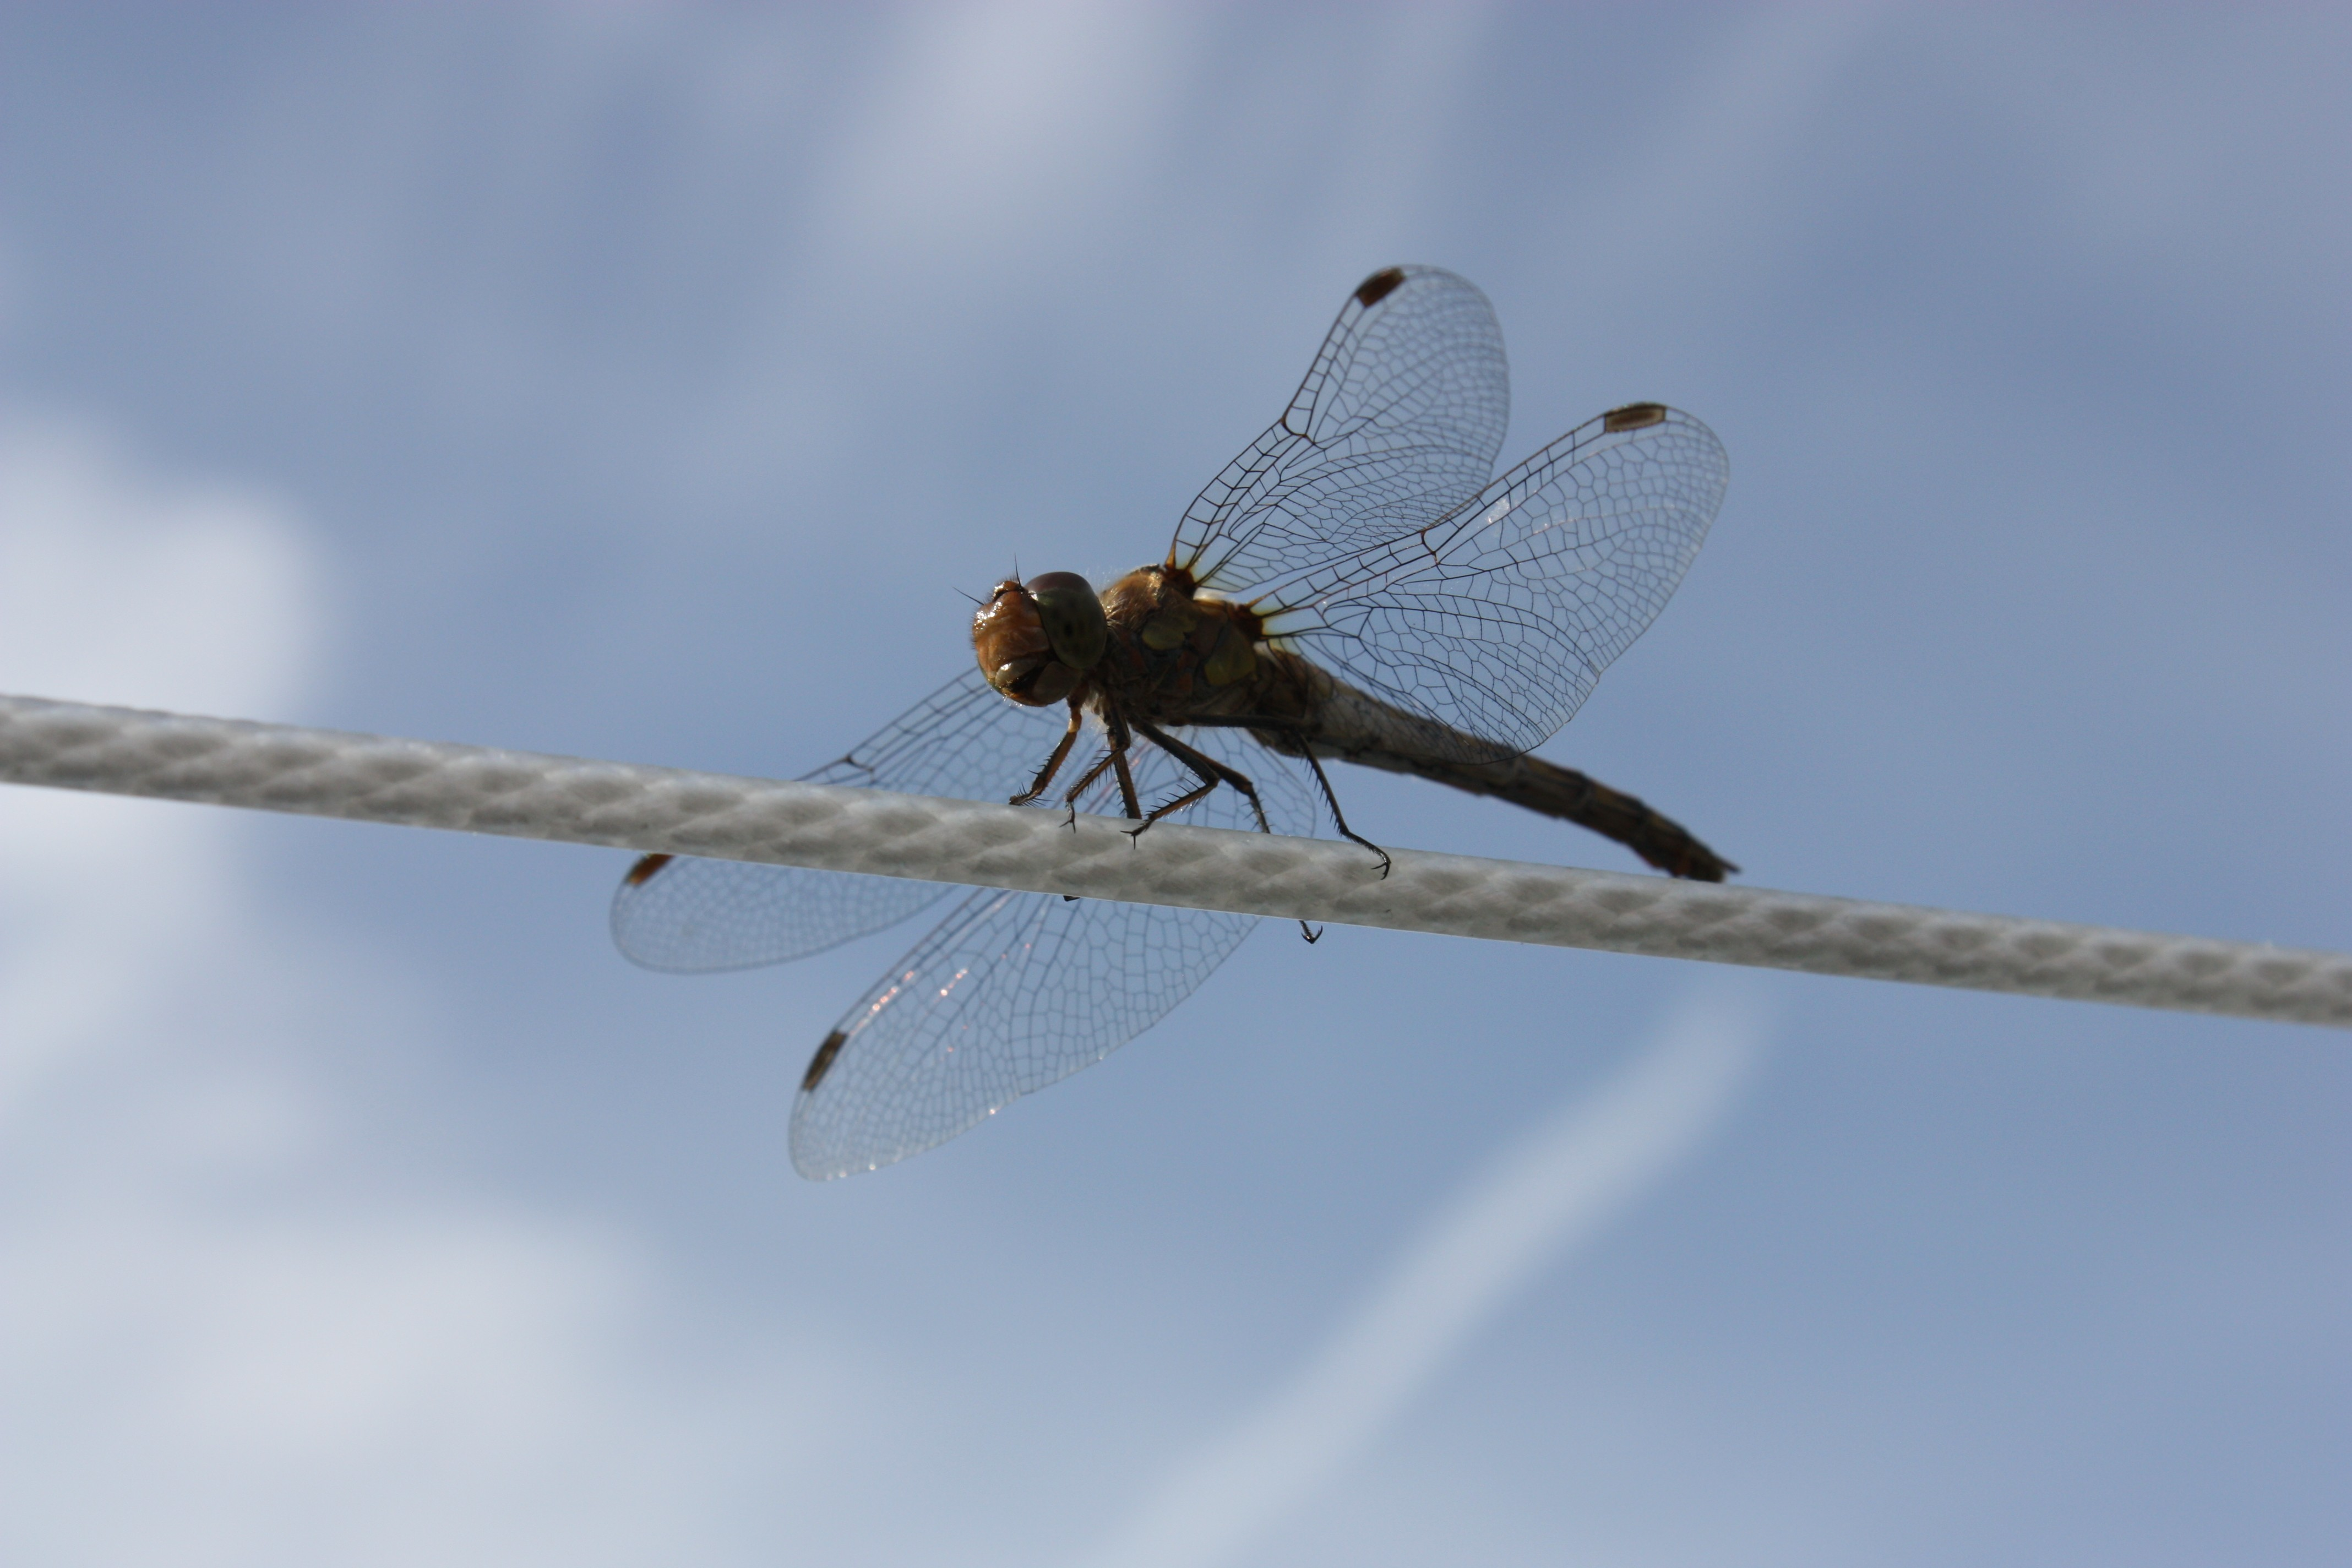 Ropes skyscapes Dragonflies insects HD Wallpaper